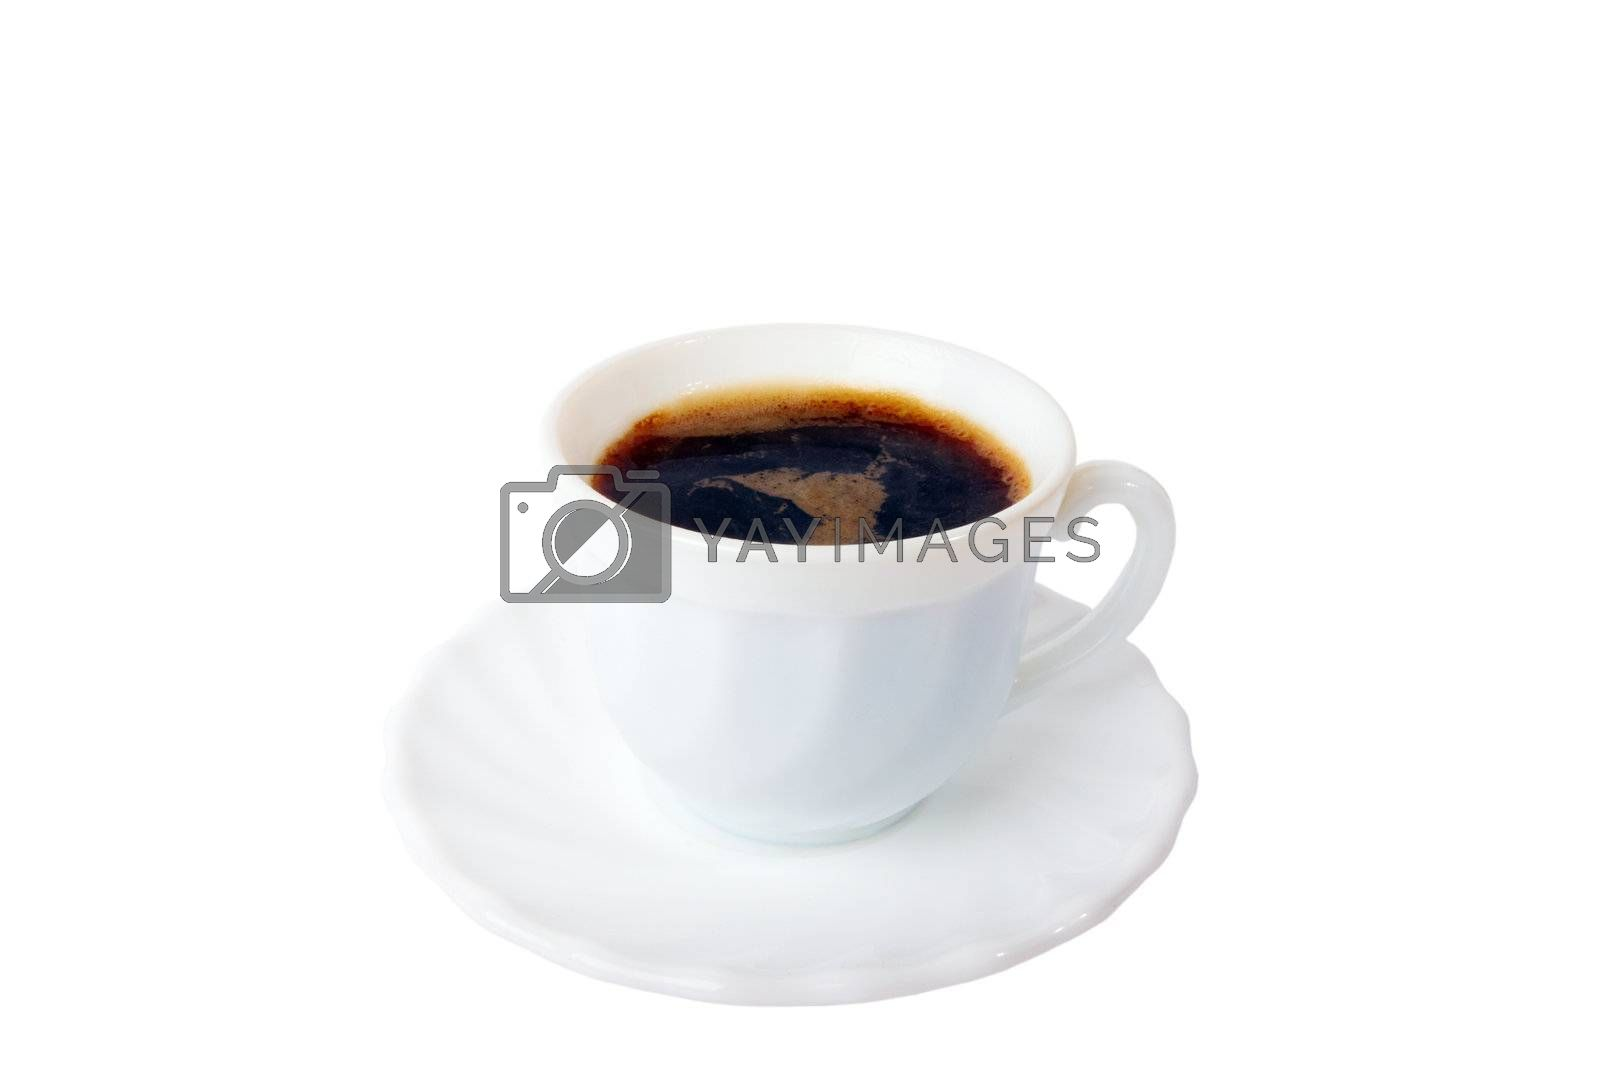 Classic espresso cup isolated on white background